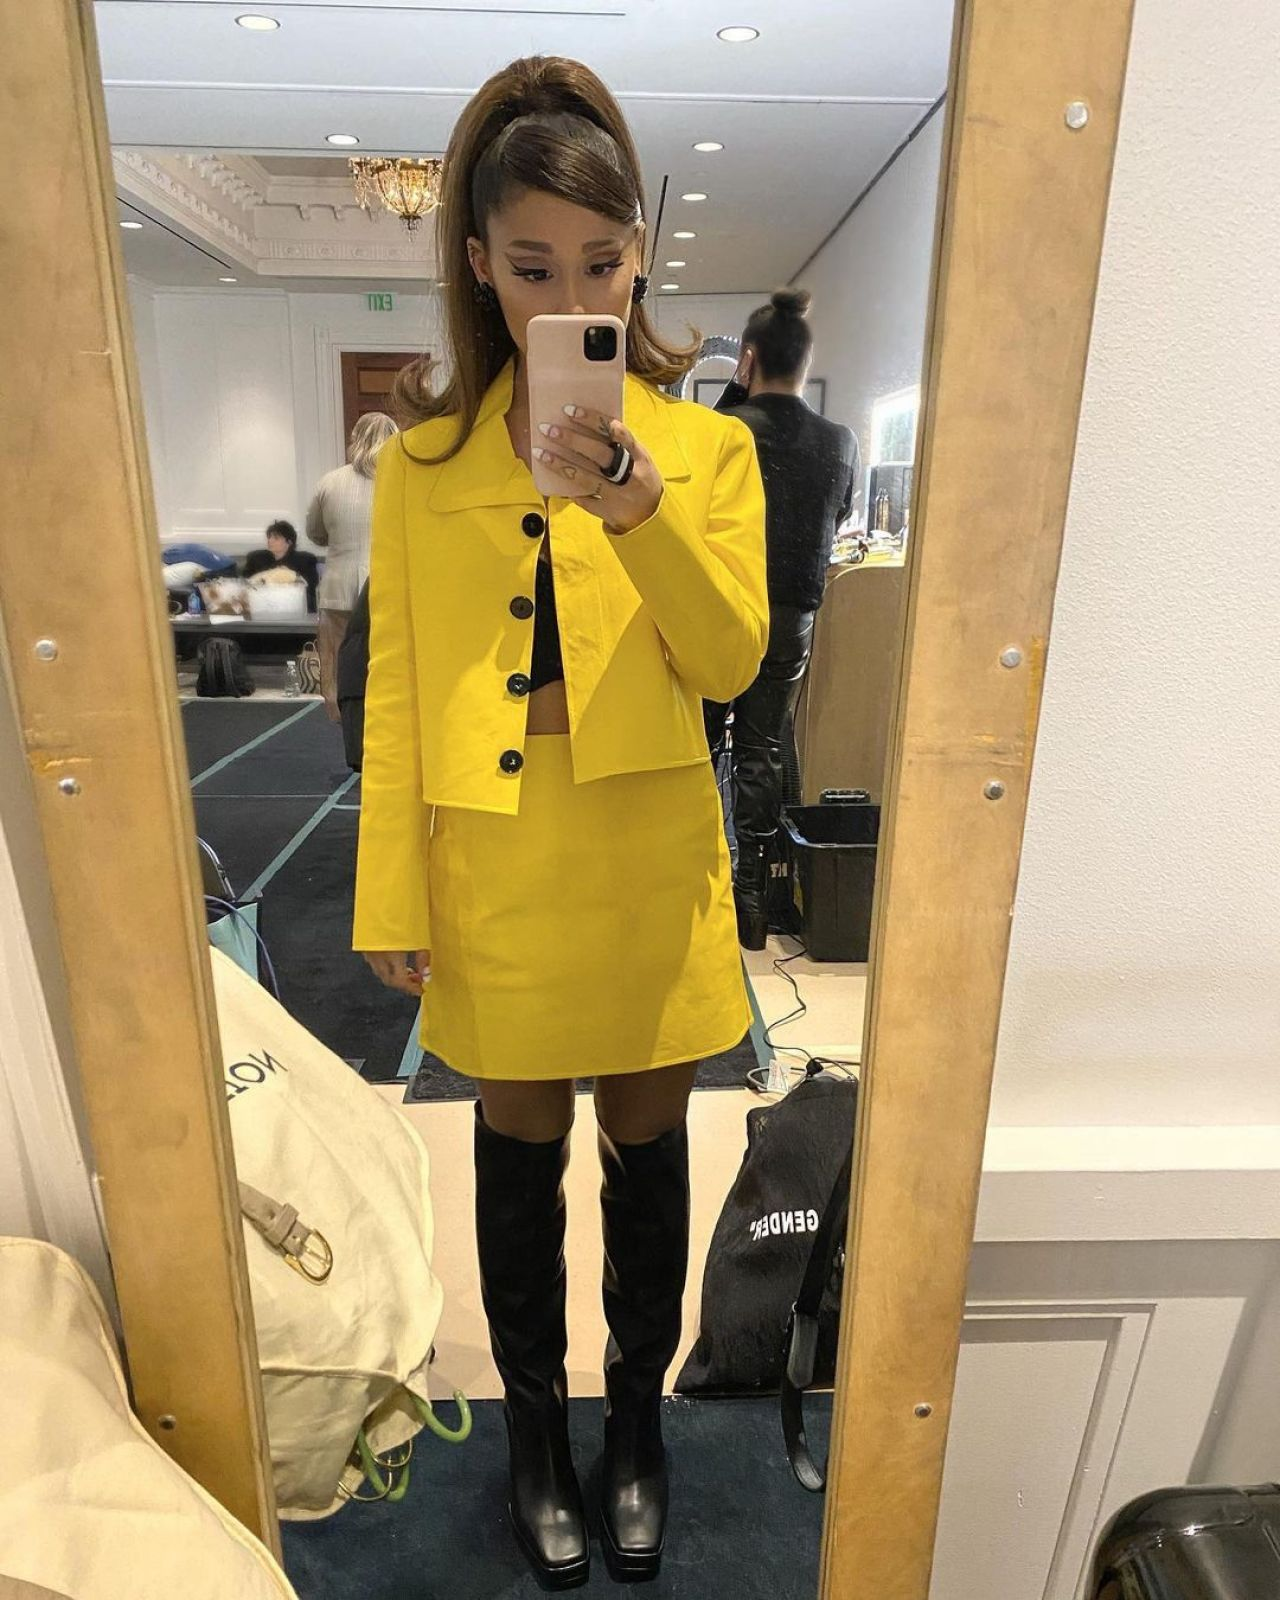 ariana-grande-in-yellow-skirt-suit-for-positions-music-video